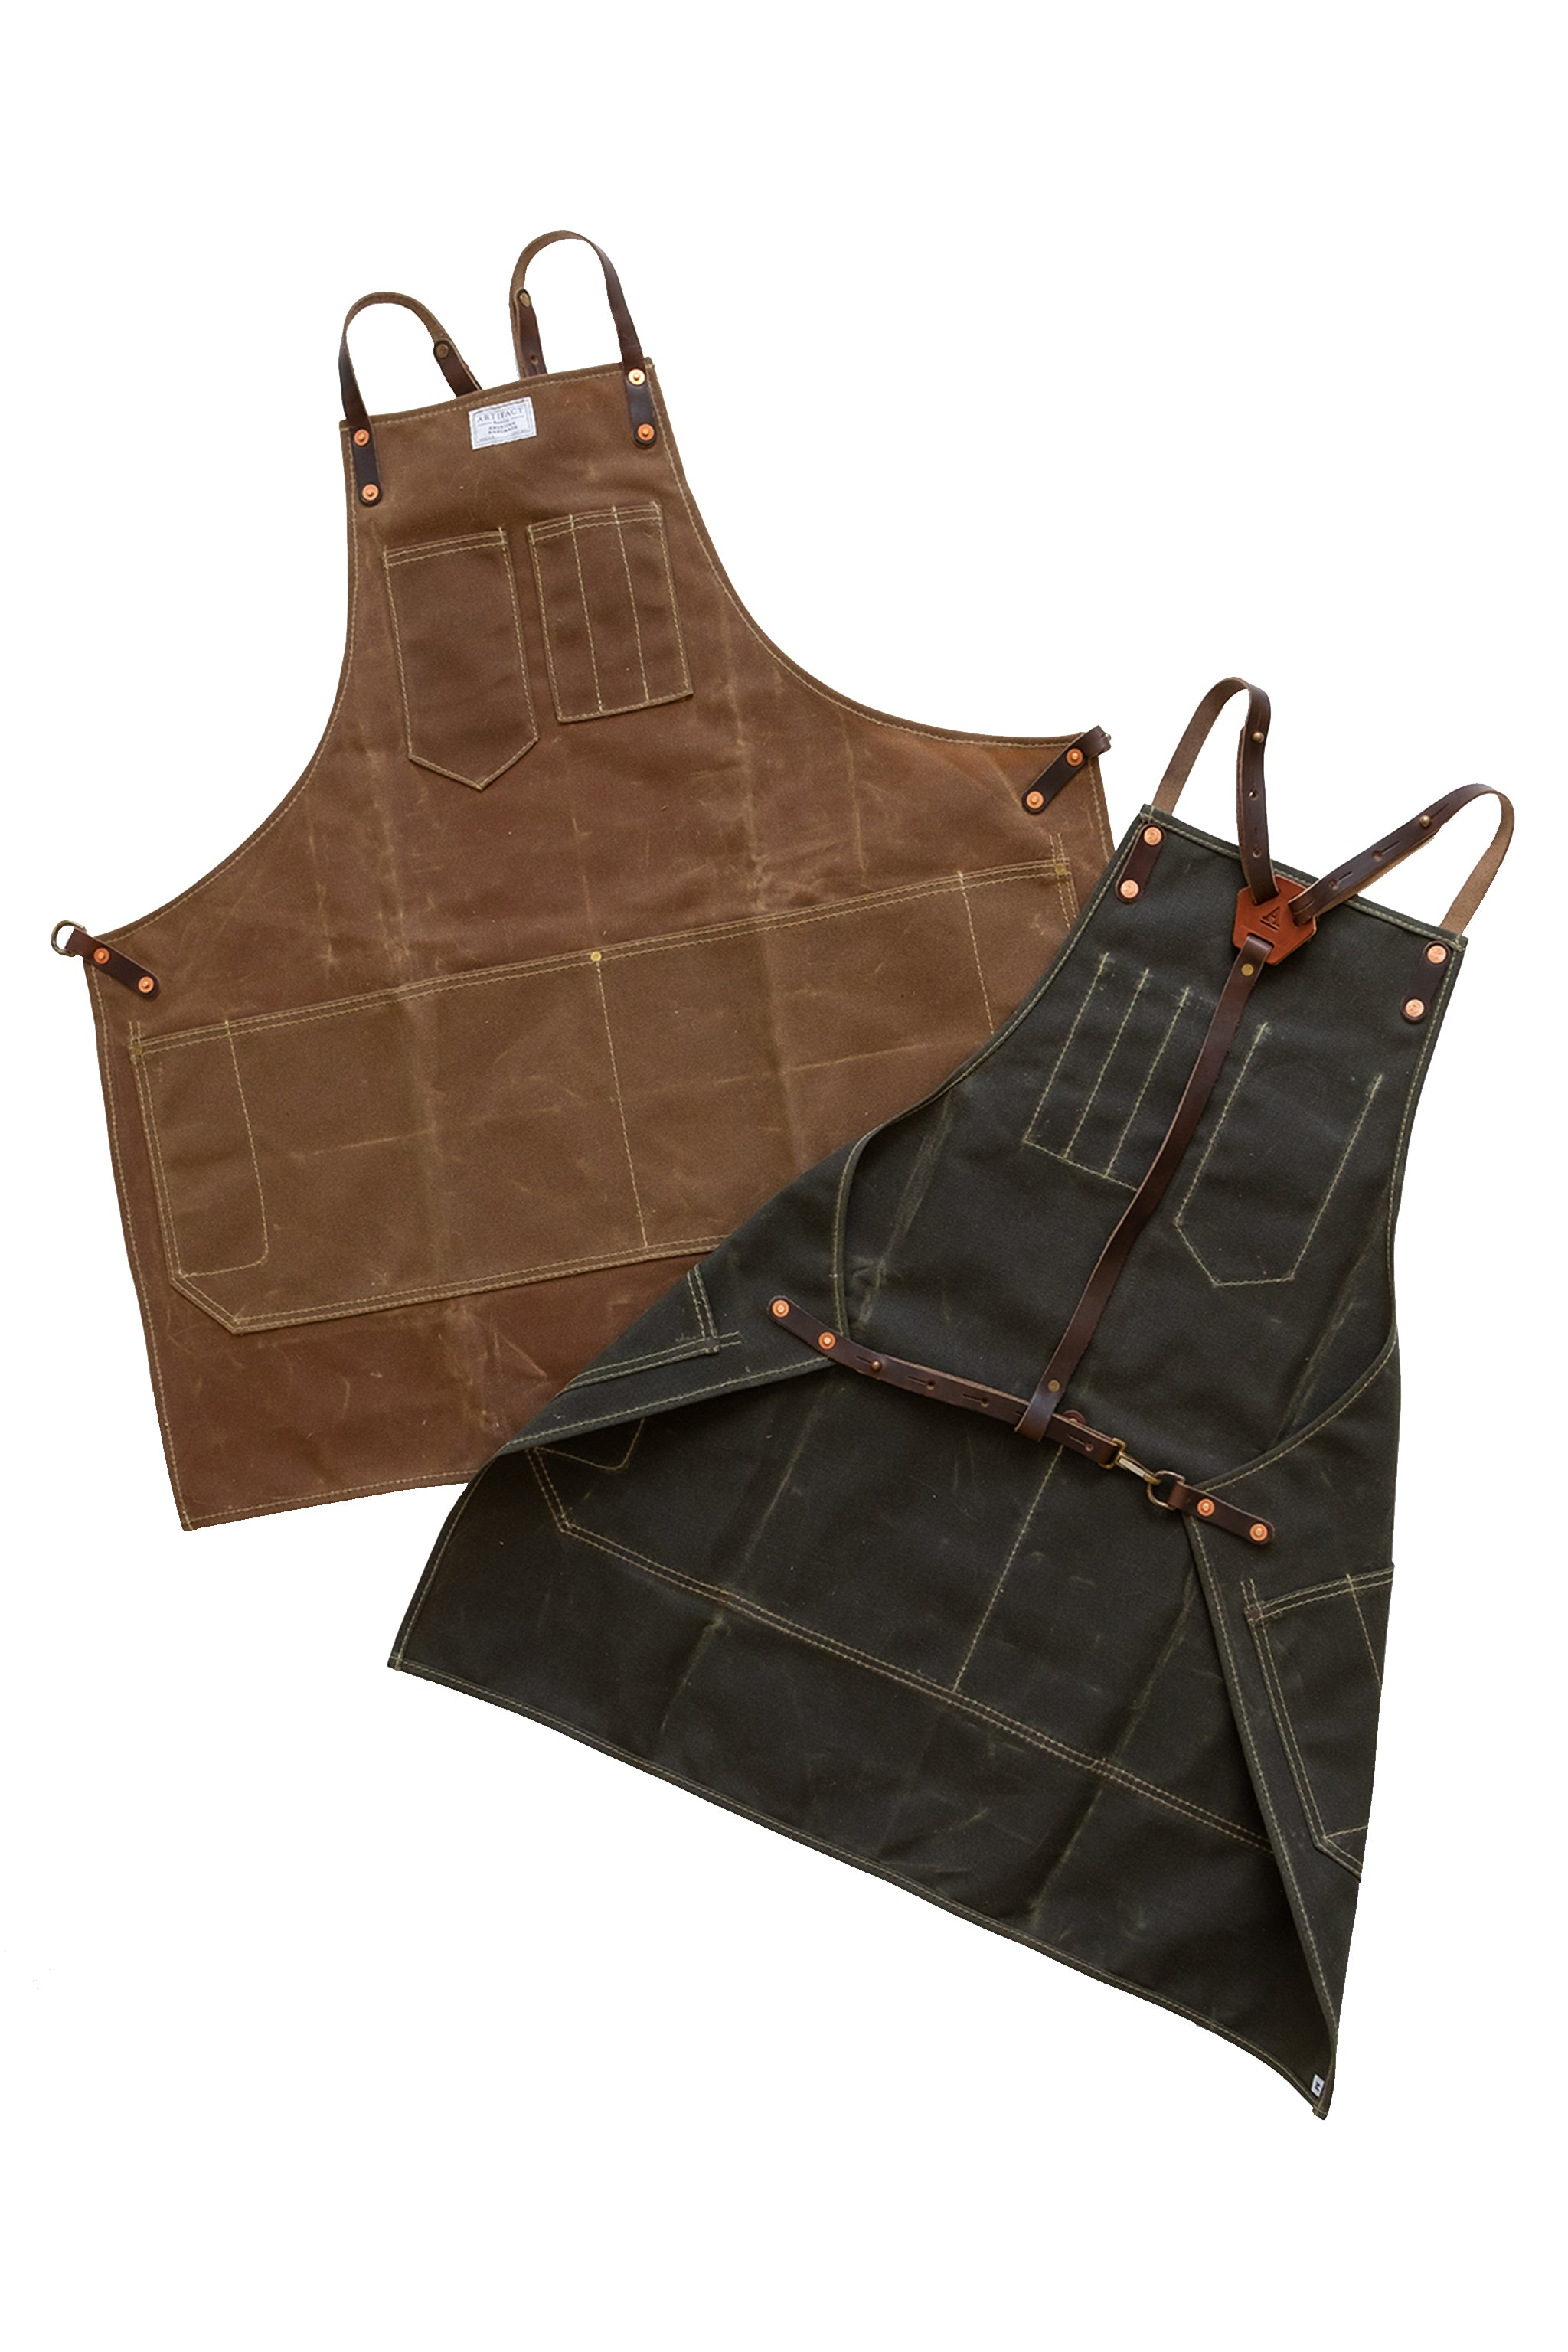 Wax Canvas Shop Apron w/ Leather Y Straps   ARTIFACT   Made in USA